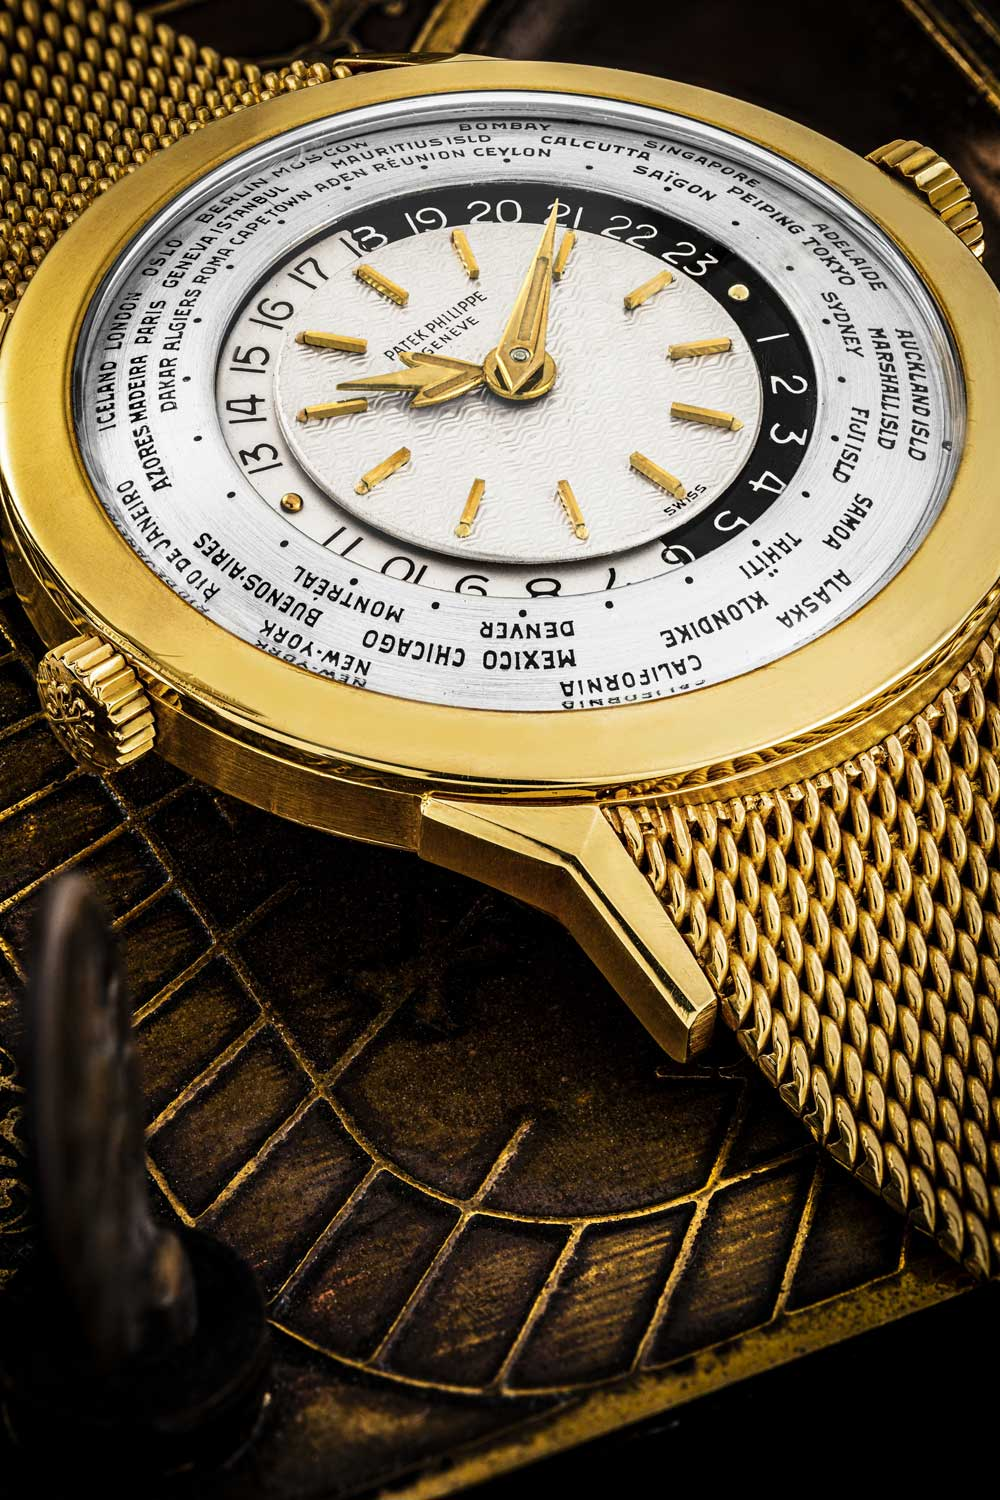 Patek Philippe reference 2523/1 offered on a detachable gold bracelet